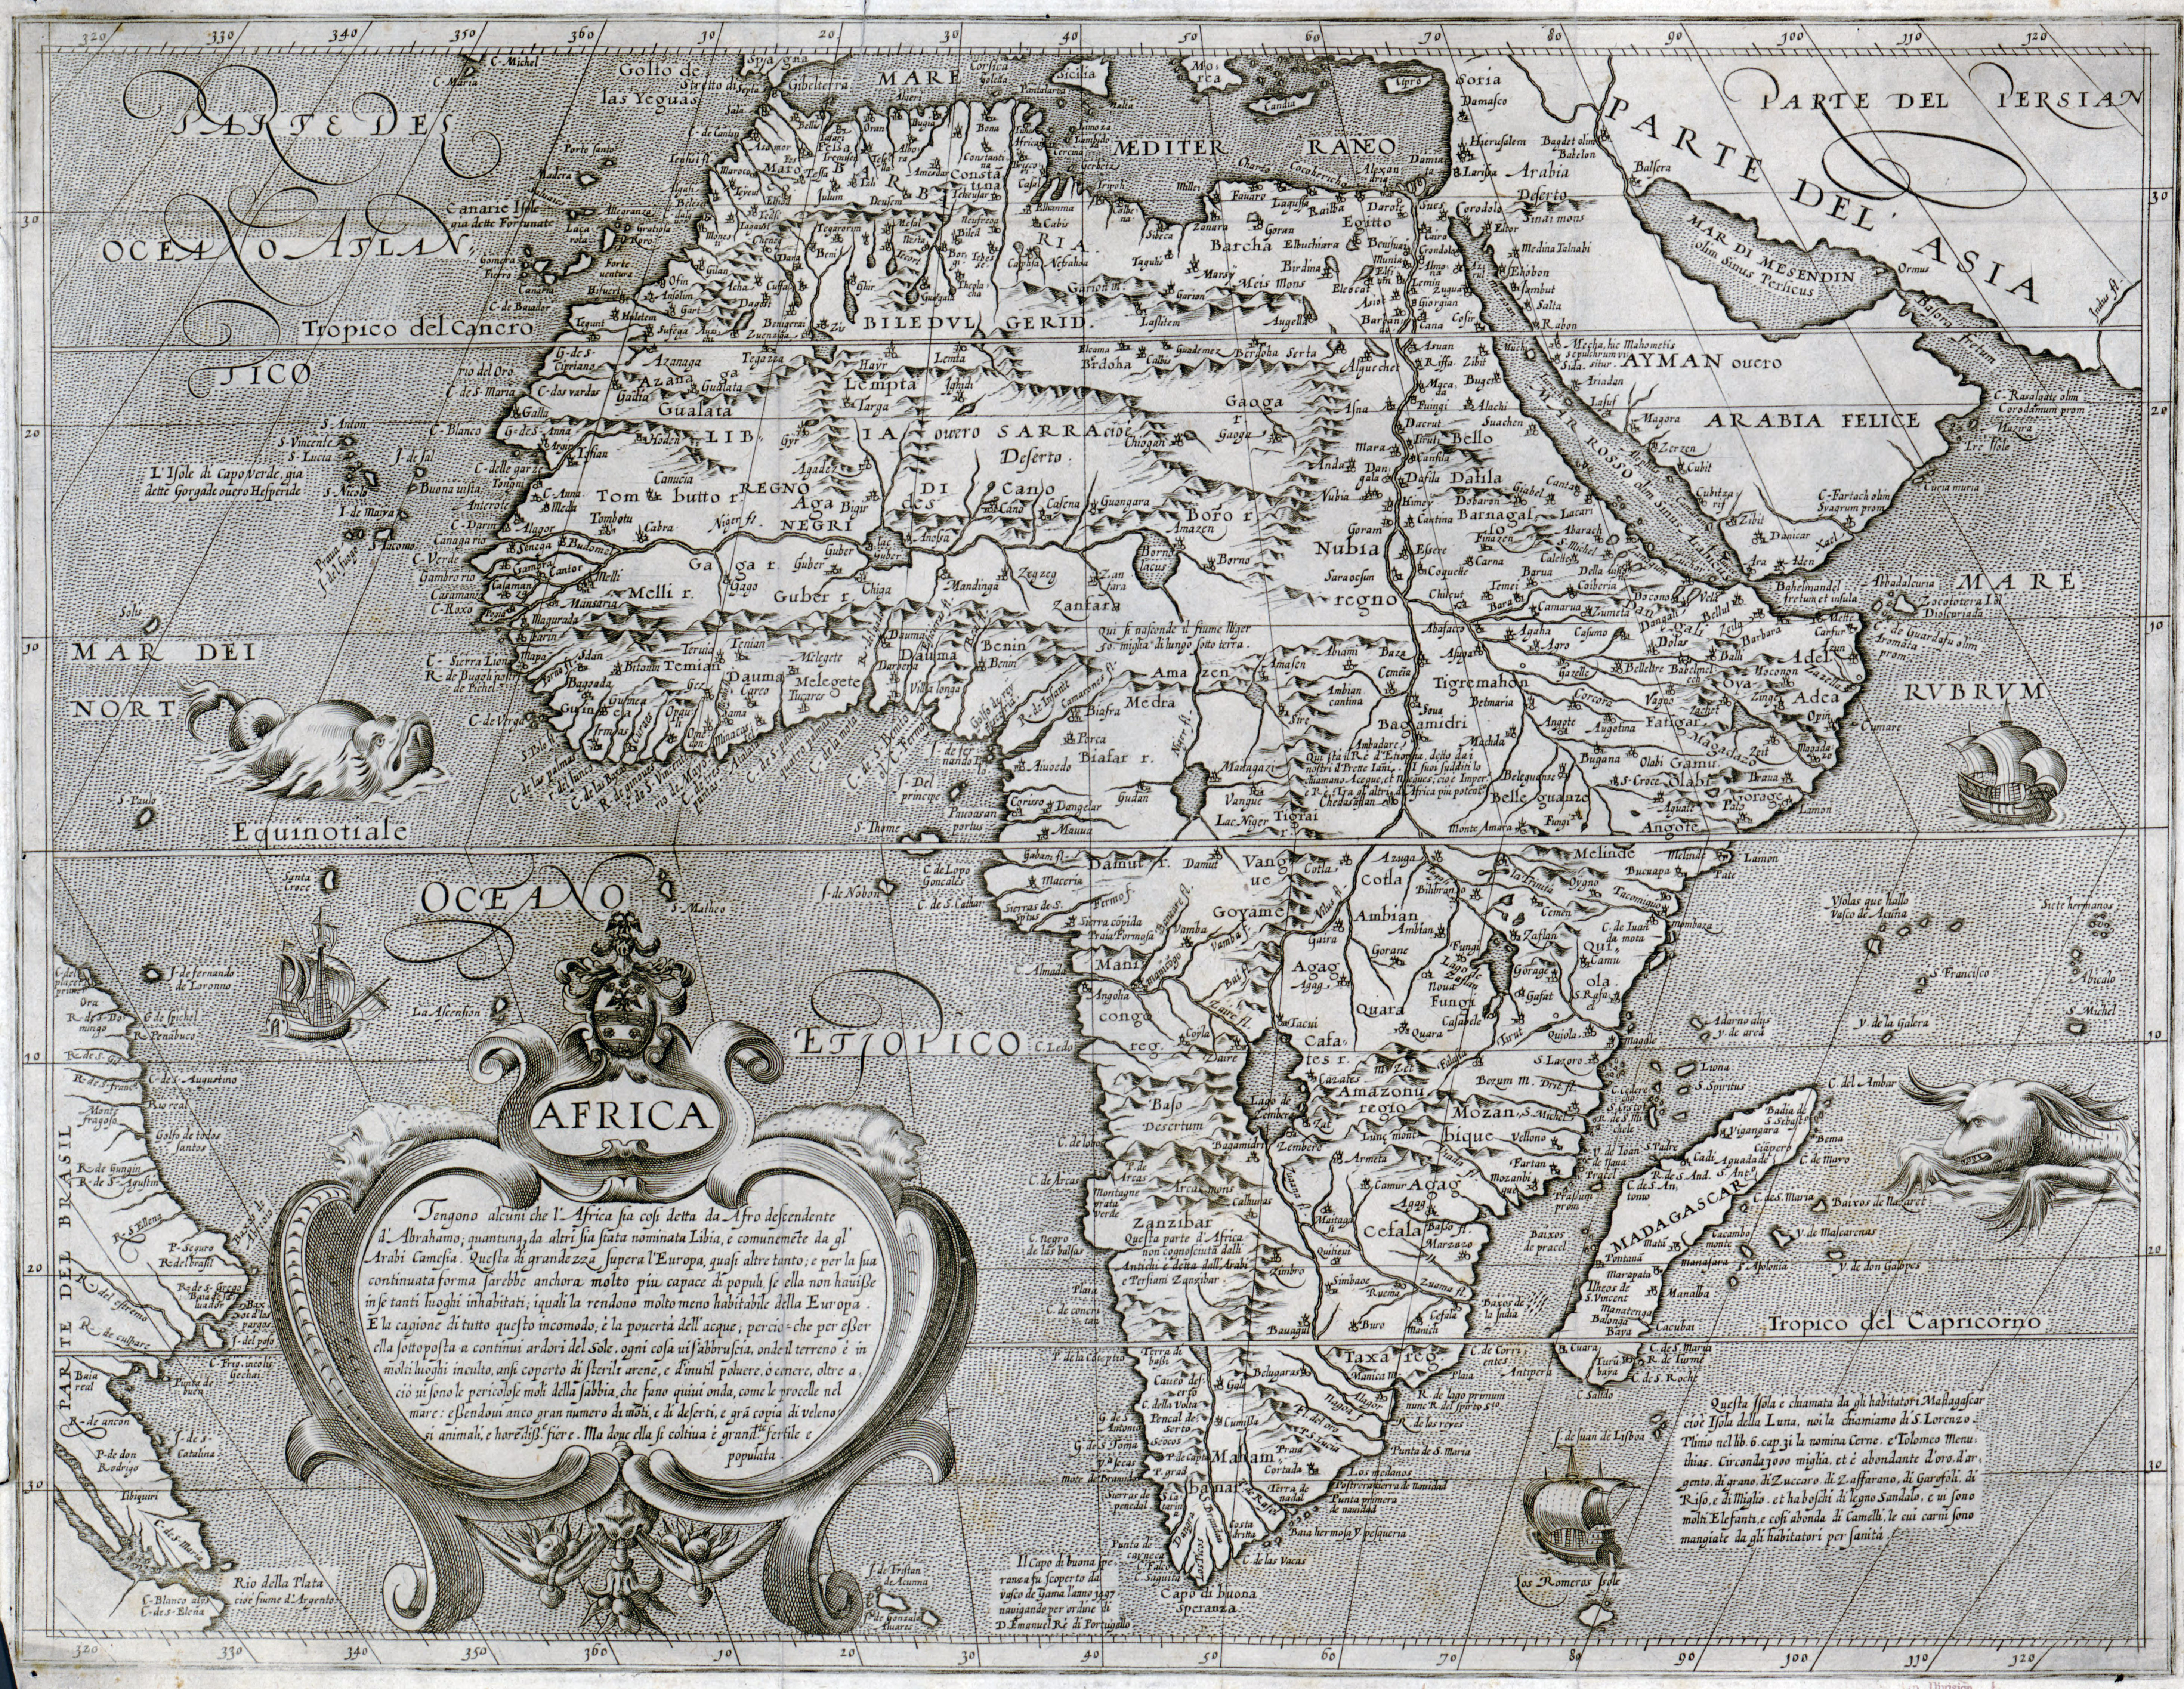 Old Map Of Africa File:Large scale old map of africa 16xx.   Wikimedia Commons